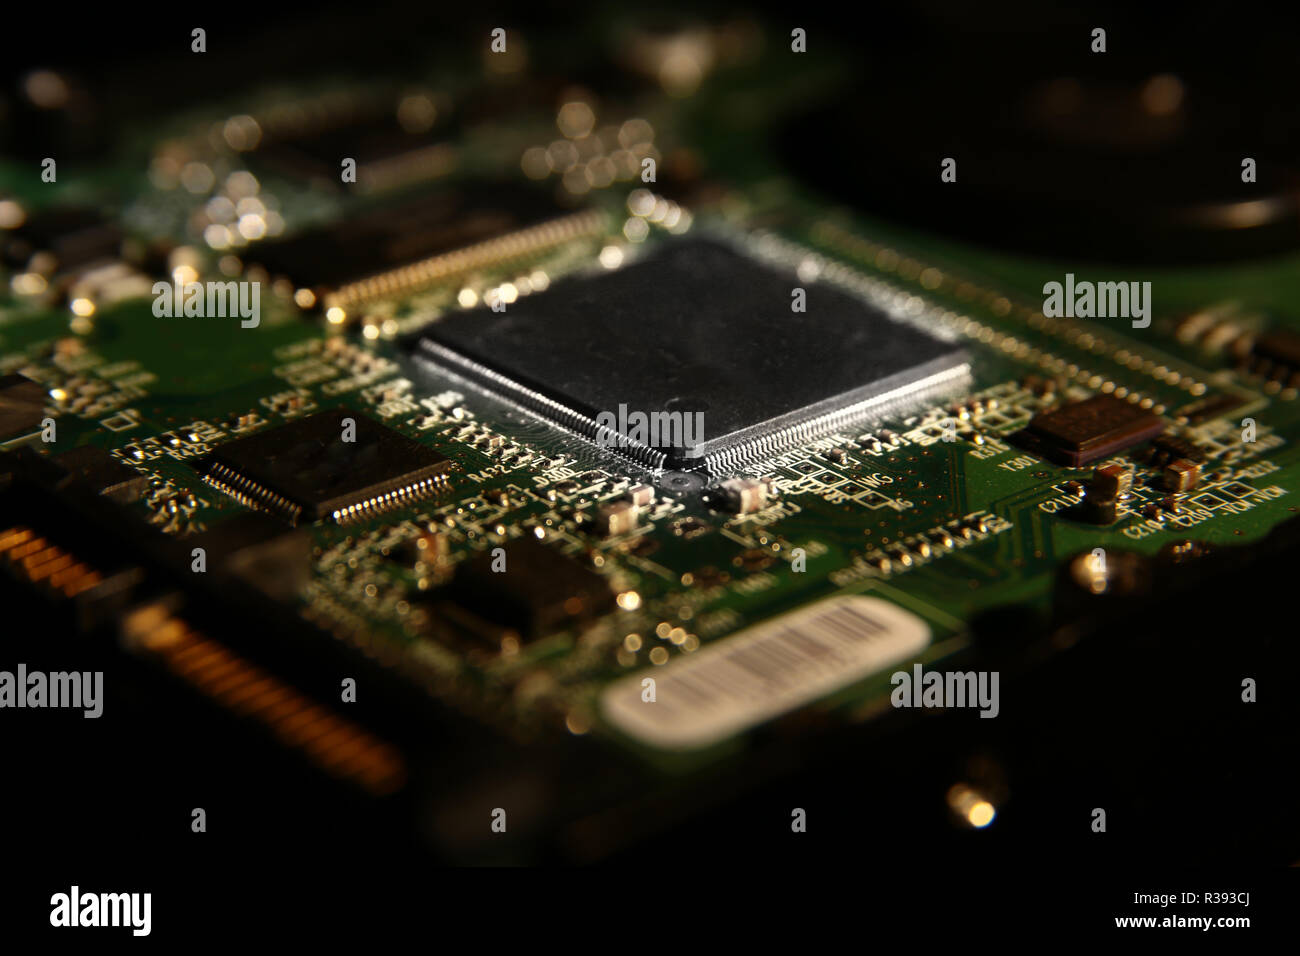 Microchip On Printed Circuit Board Stock Photos Pcb 13 Royalty Free Image Cpu Chipset With Electronic Components Close Up